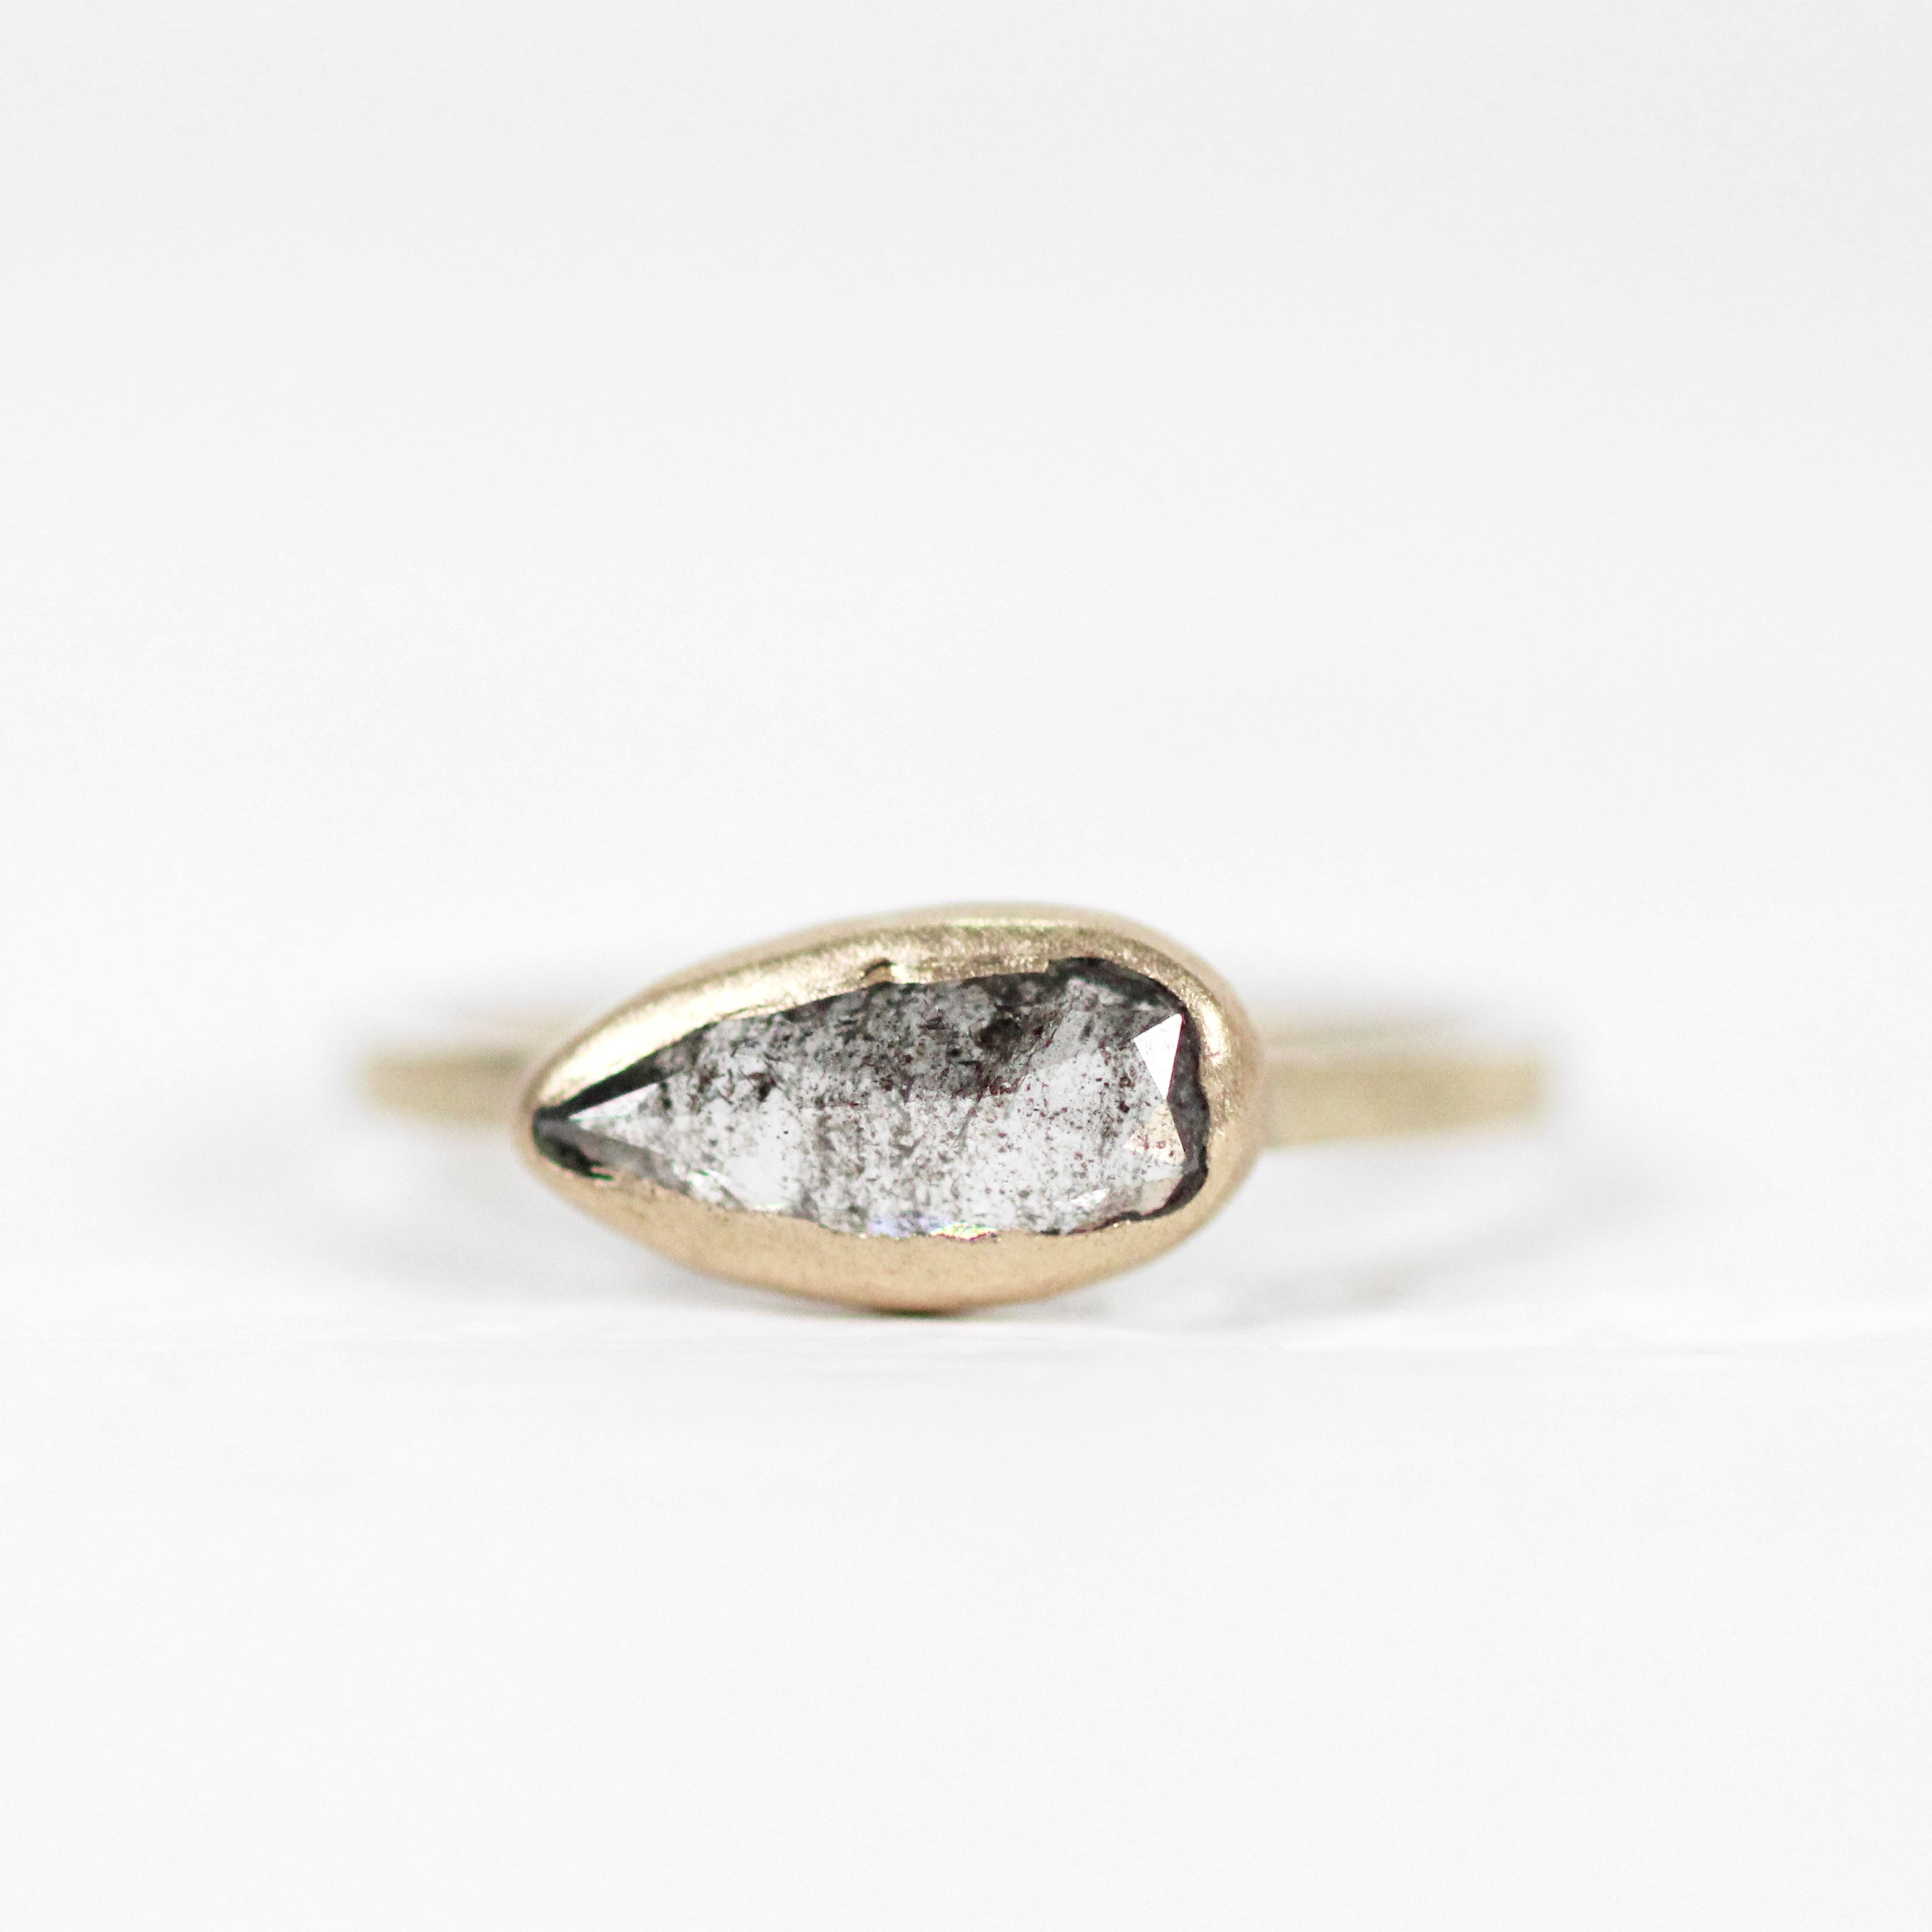 Pear Celestial Diamond in a Bezel Set Ring in Yellow Gold - Ready to Size and Ship - Celestial Diamonds ® by Midwinter Co.